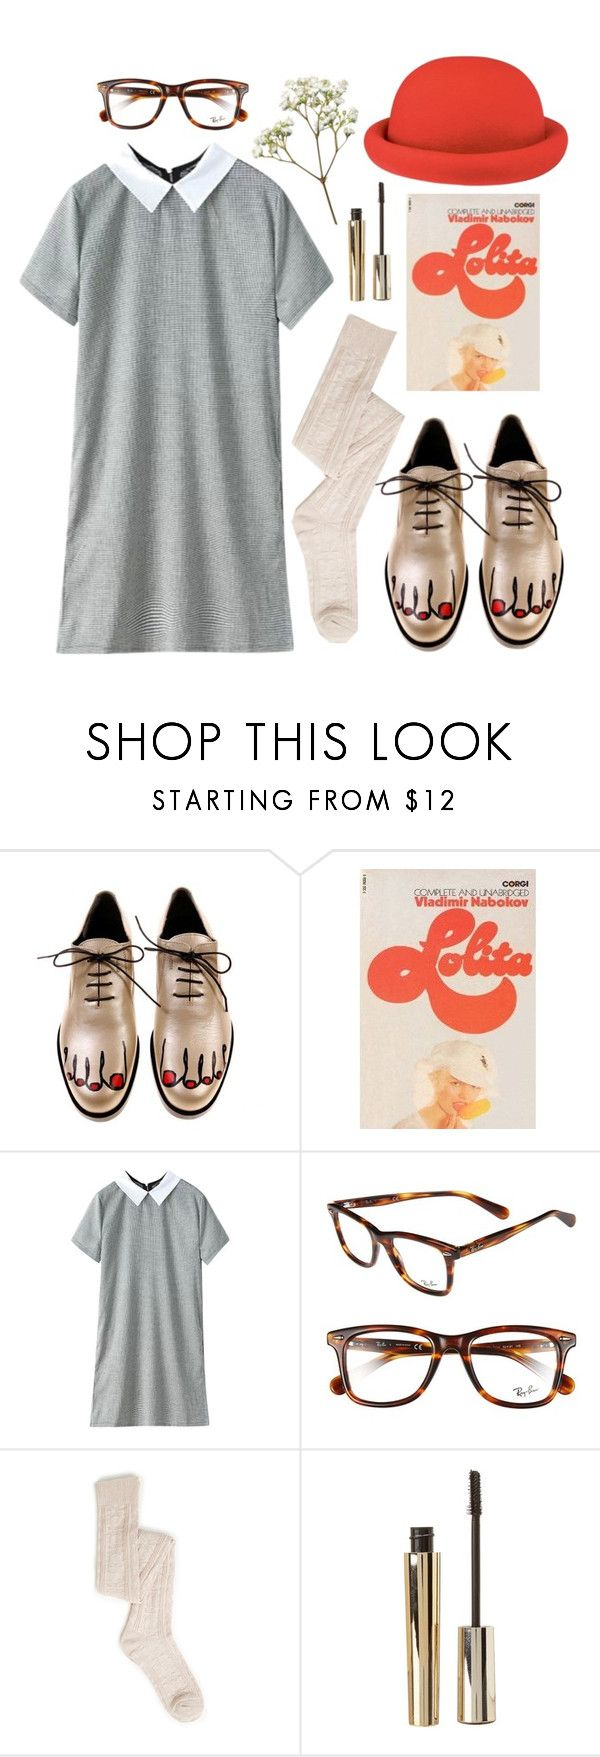 """""""if you want to sing out, sing out (tag)"""" by celluloid ❤ liked on Polyvore featuring Luella, CO, H&M, Ray-Ban and Stila"""